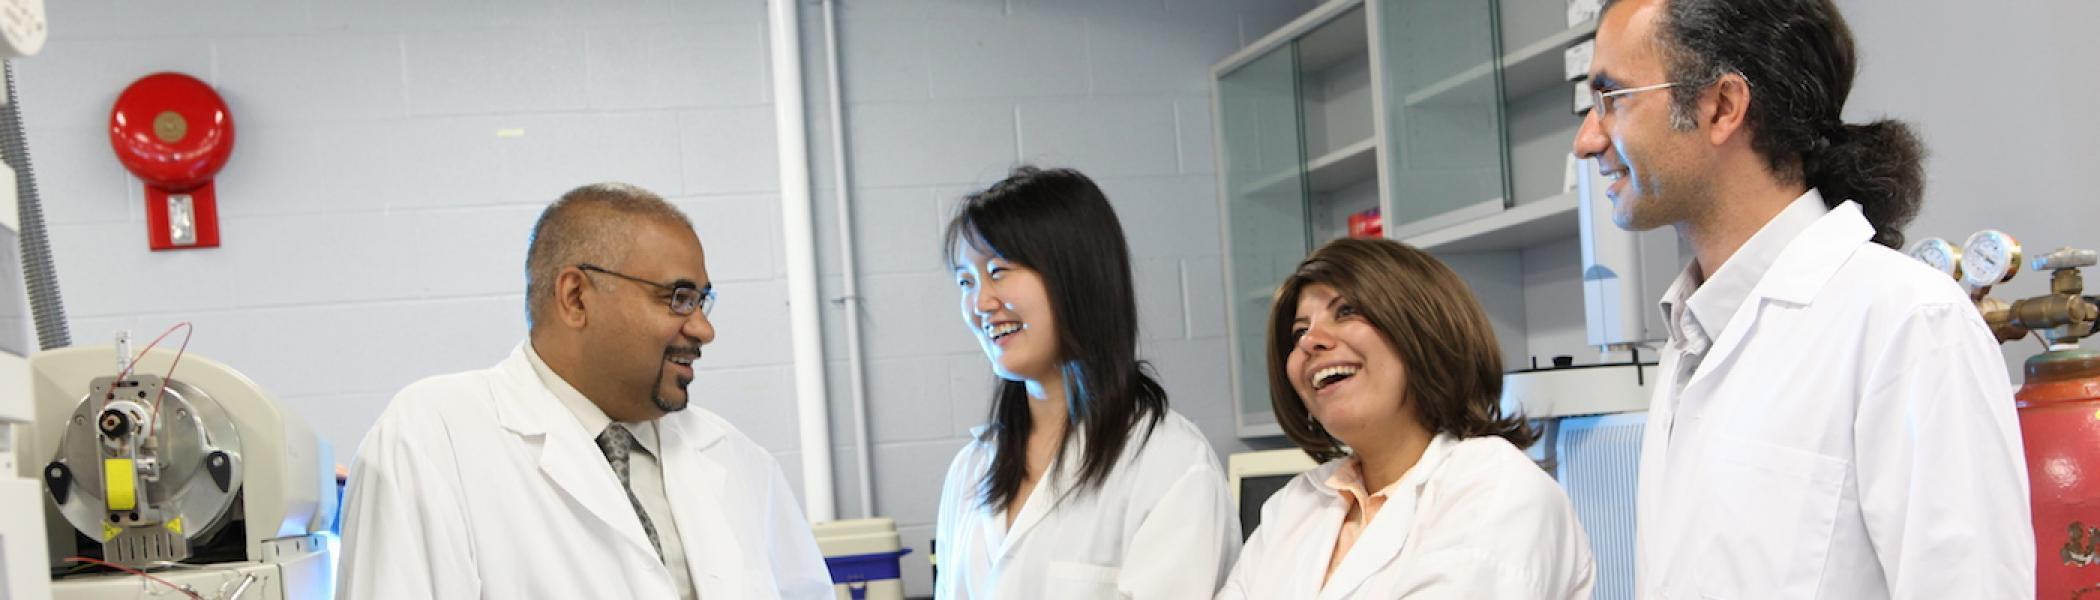 4 faculty members wearing white labs coats, looking at each other and smiling